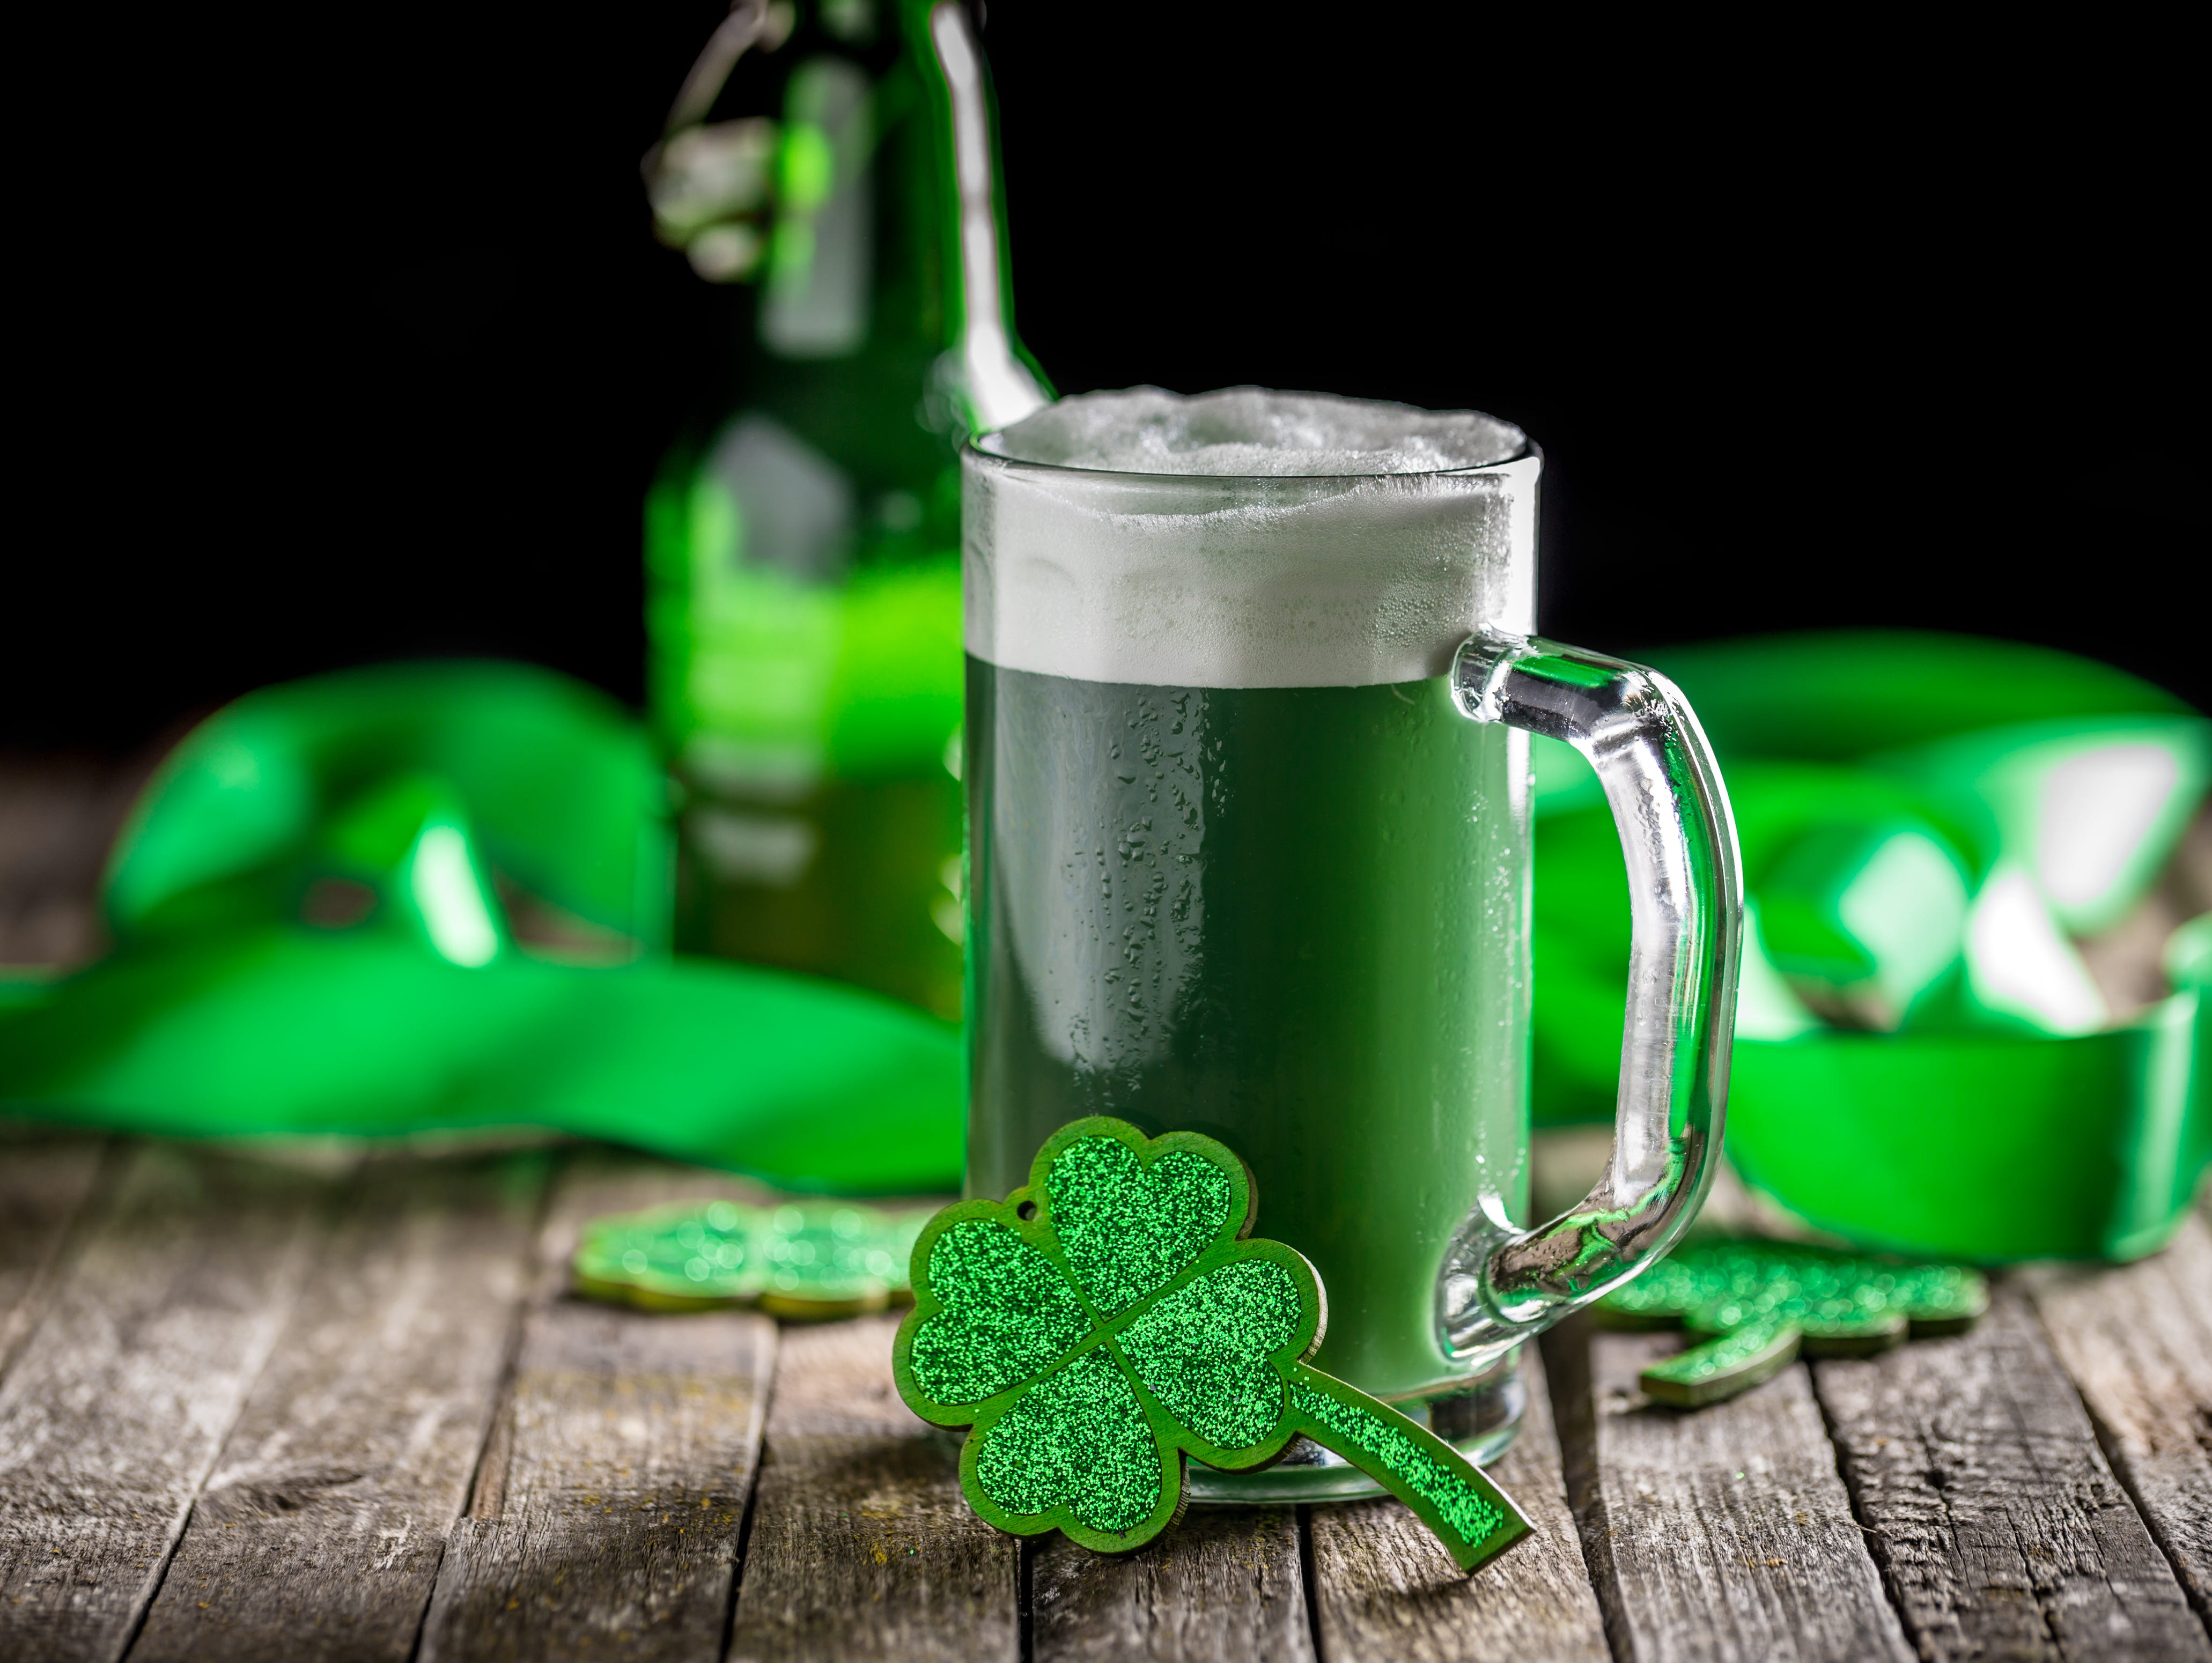 You could win a $100 gift card to celebrate St. Patty's Day at The Pub. Enter to win 2/21-3/9.